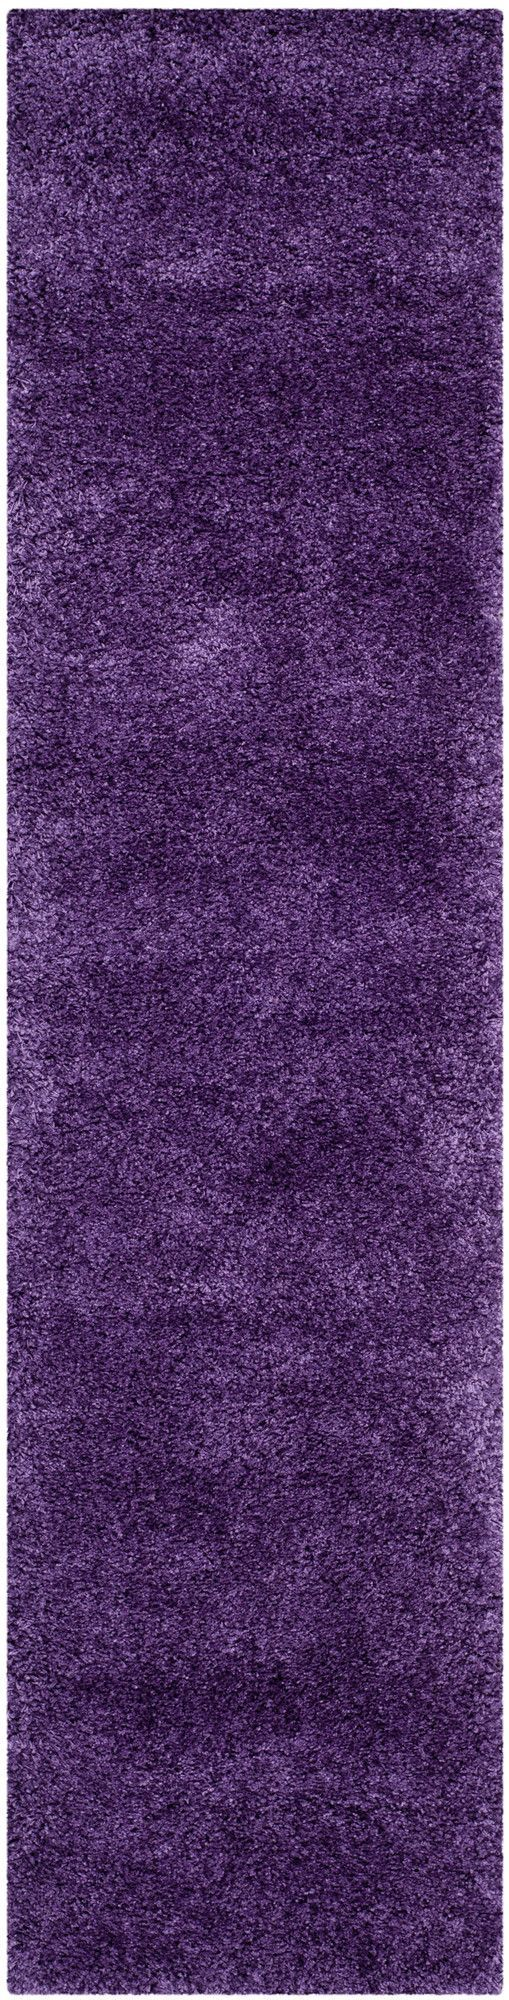 25+ best ideas about Purple Rugs on Pinterest | Purple modern ... - 25+ best ideas about Purple Rugs on Pinterest | Purple modern bathrooms,  Pink and grey rug and Purple home offices